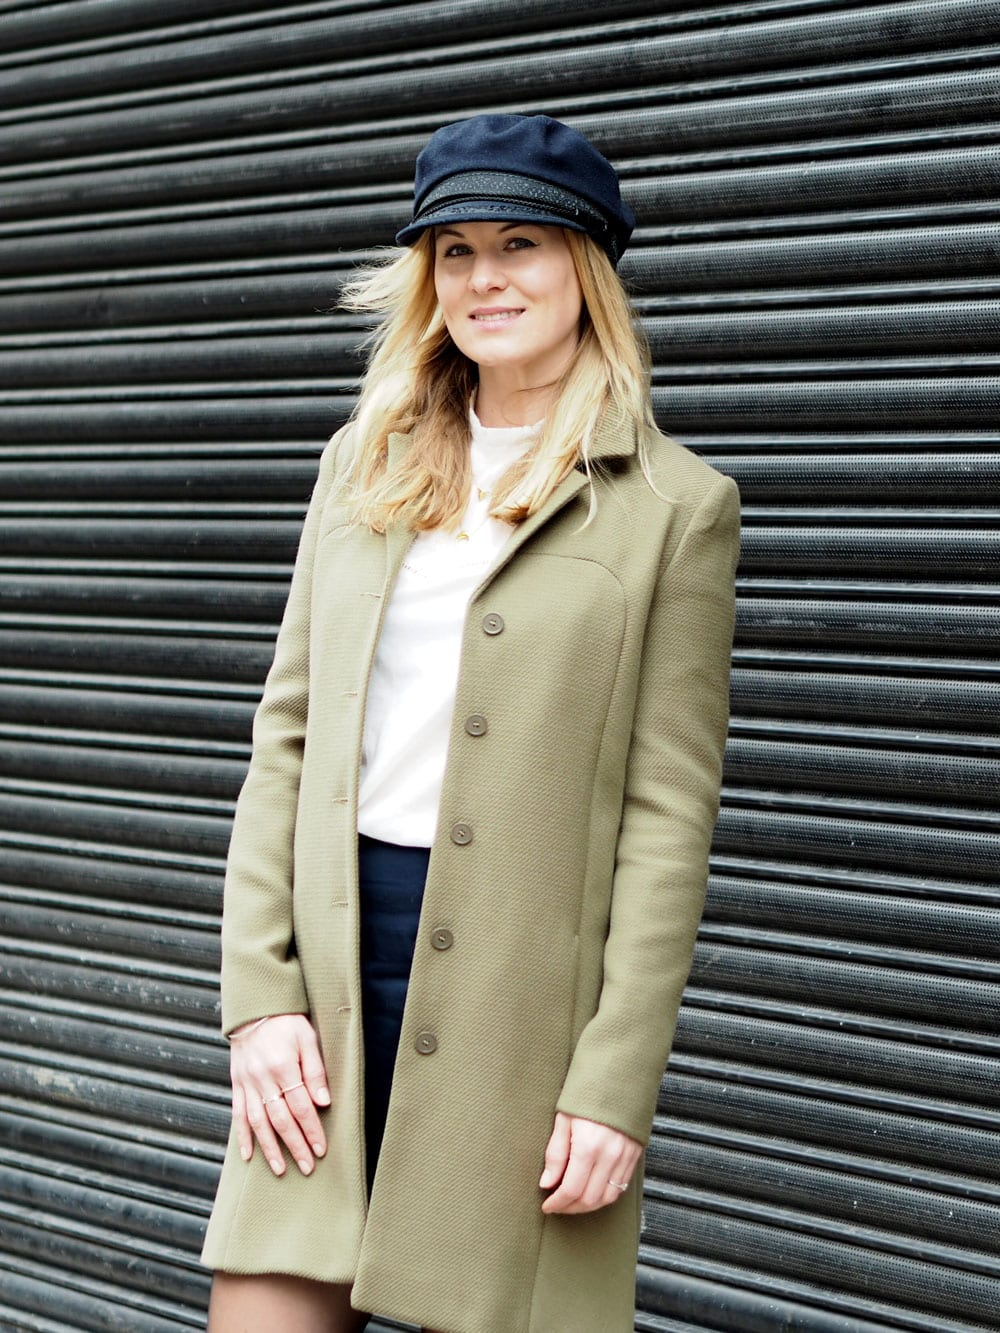 Style&Minimalism | It's Personal | LFW Day 3 AW16 with La Redoute